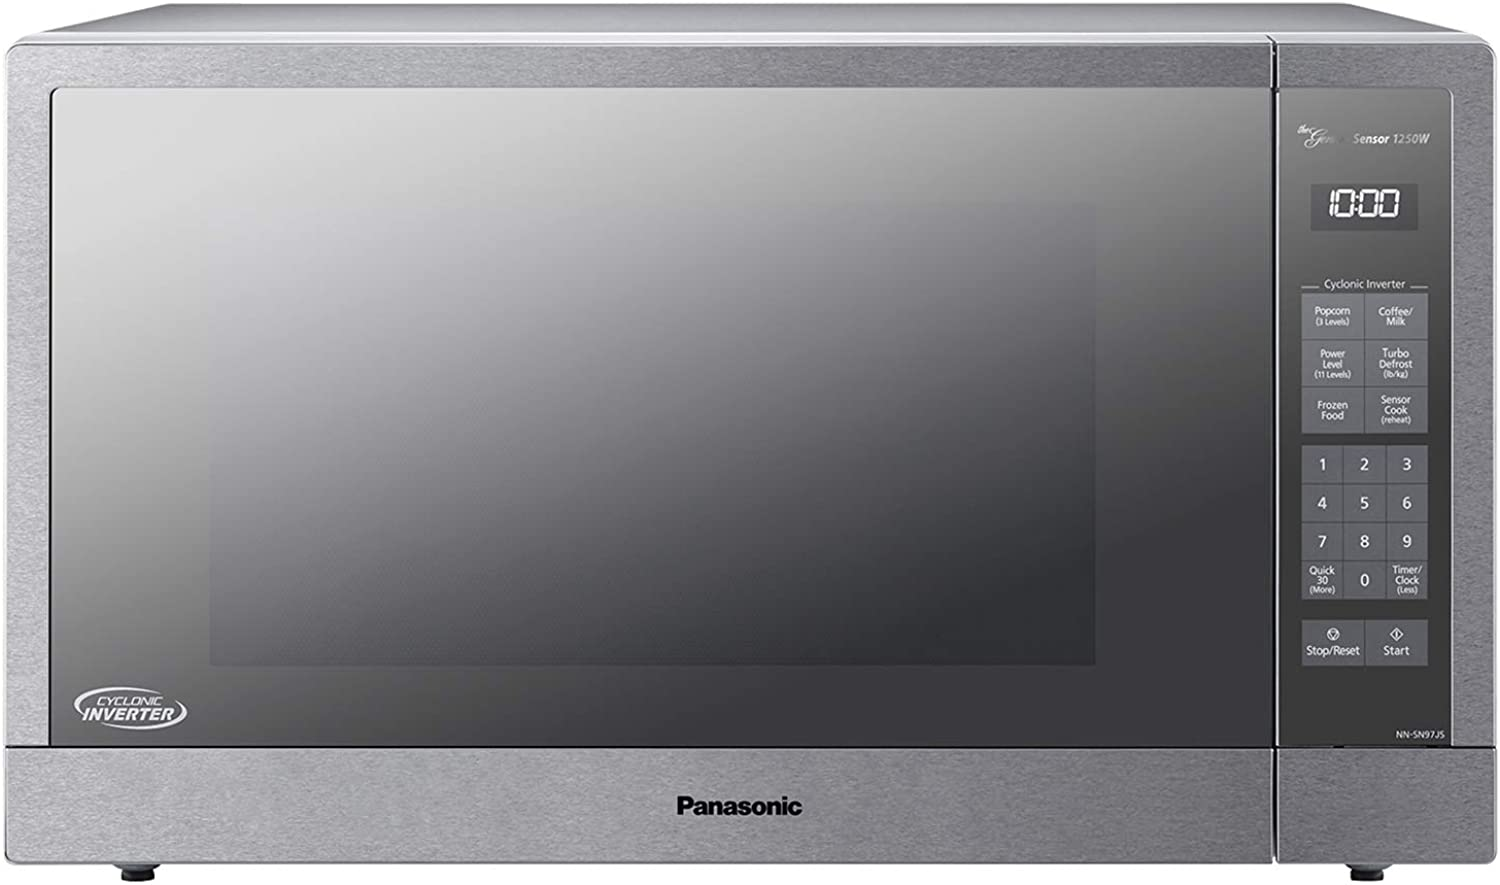 Panasonic Microwave Oven, Stainless Steel Countertop Built-In Cyclonic Wave with Ingreener Technology and Genius Sensor, 2.2 Cu. Ft, 1250W, NN-SN97JS (Silver)